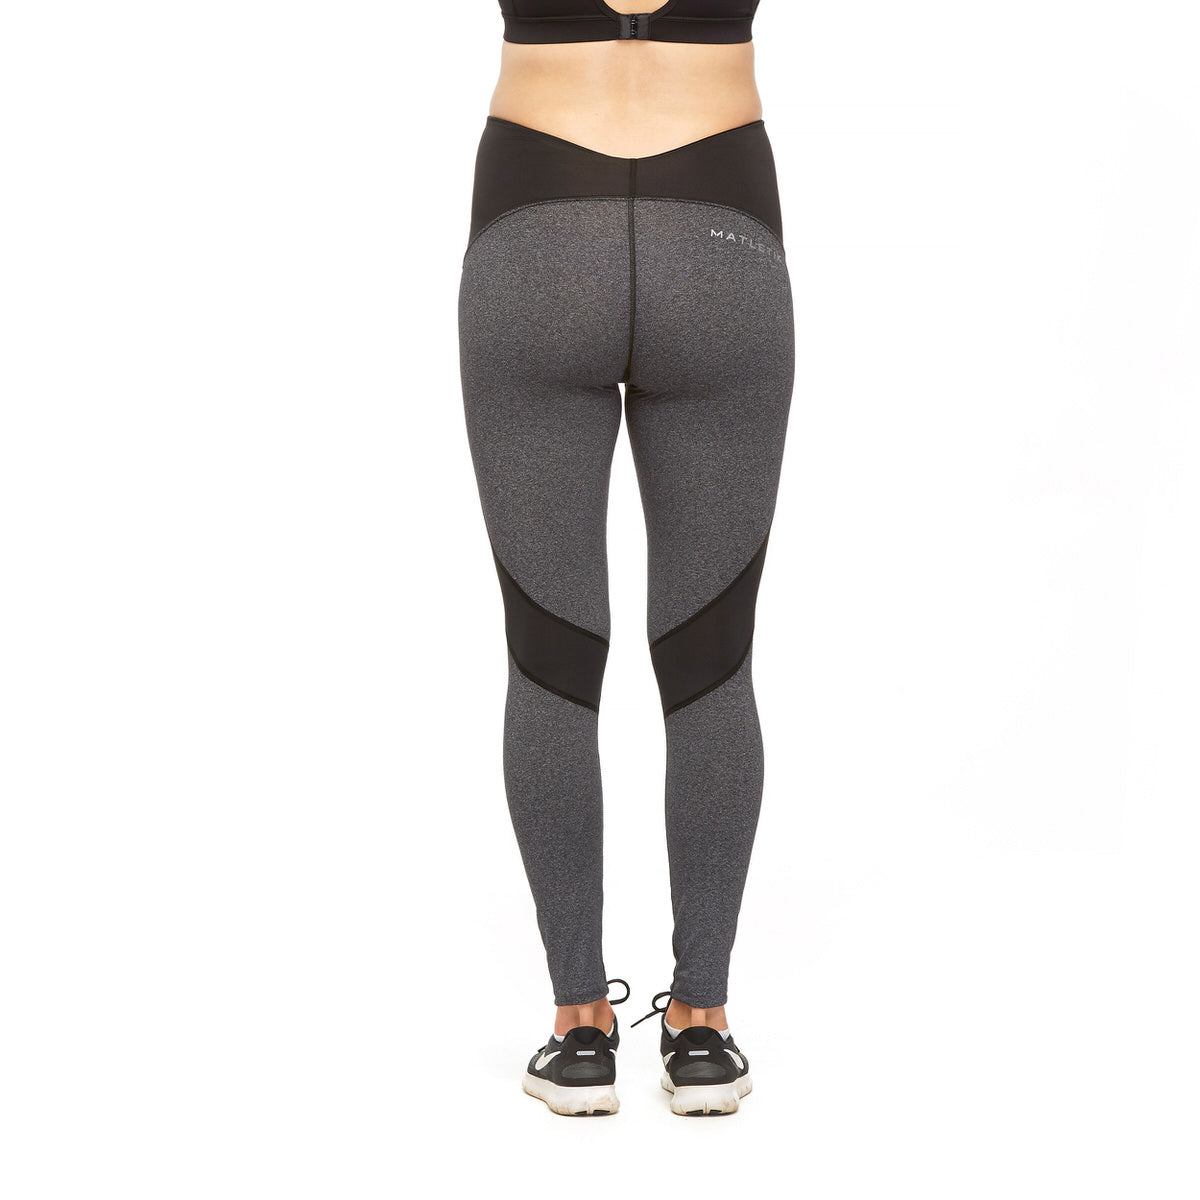 COURAGE LEGGING - Active full length with fold over panel